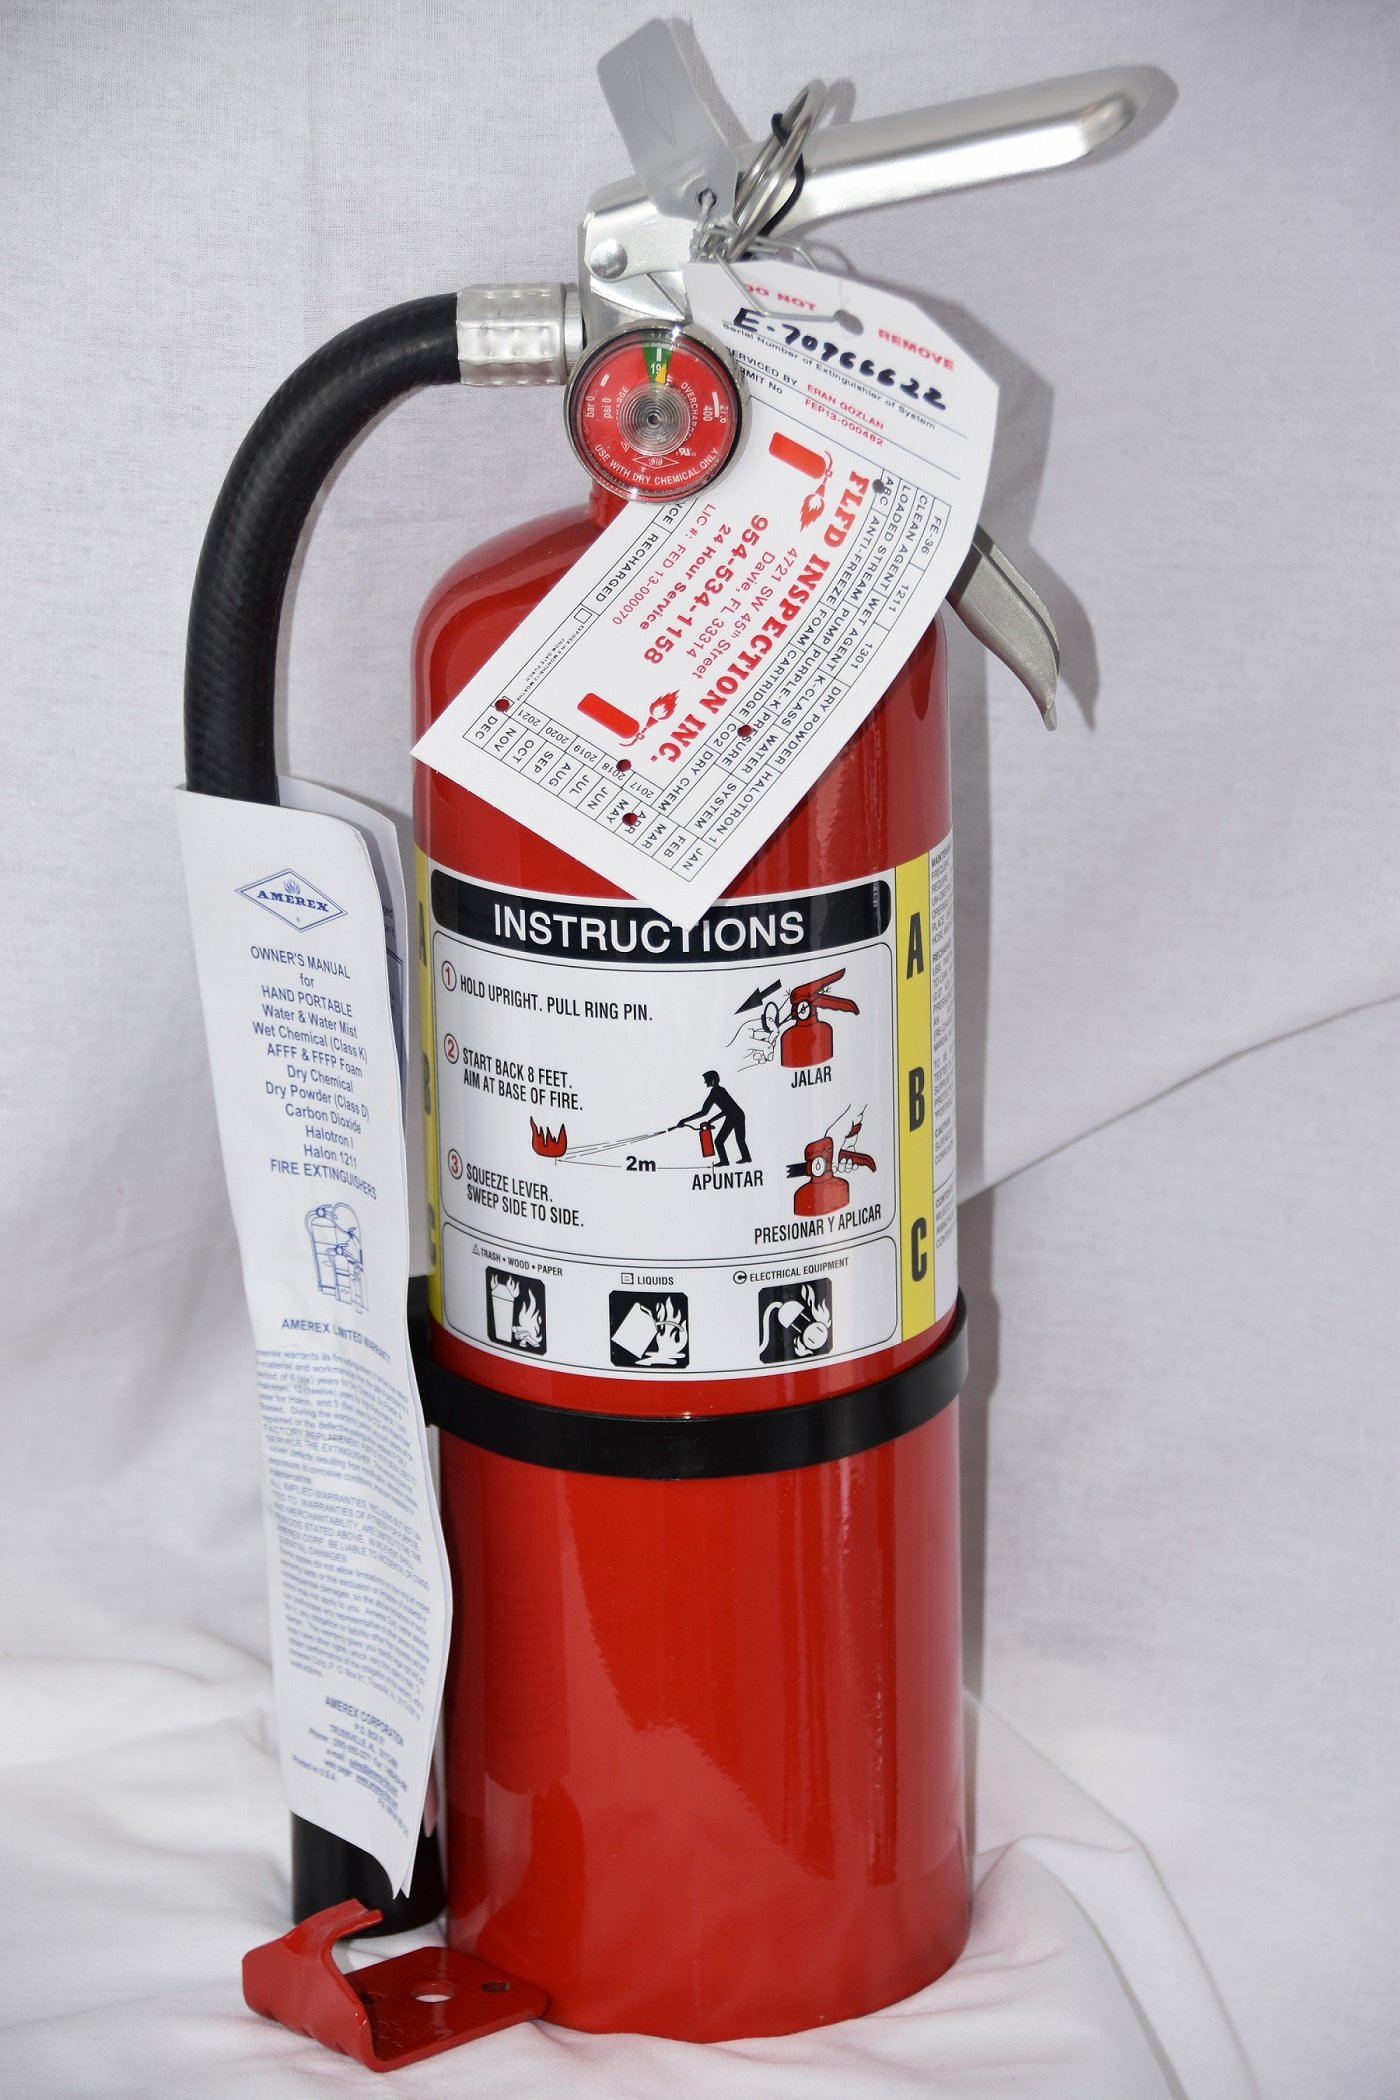 (Lot of 1) 5 Lb. Type ABC Dry Chemical Fire Extinguishers, with 1 - Wall Bracket and 1 - Certification Tag - Ready For Fire Inspections - 3A - 40 BC Rating by Amerex (Image #1)